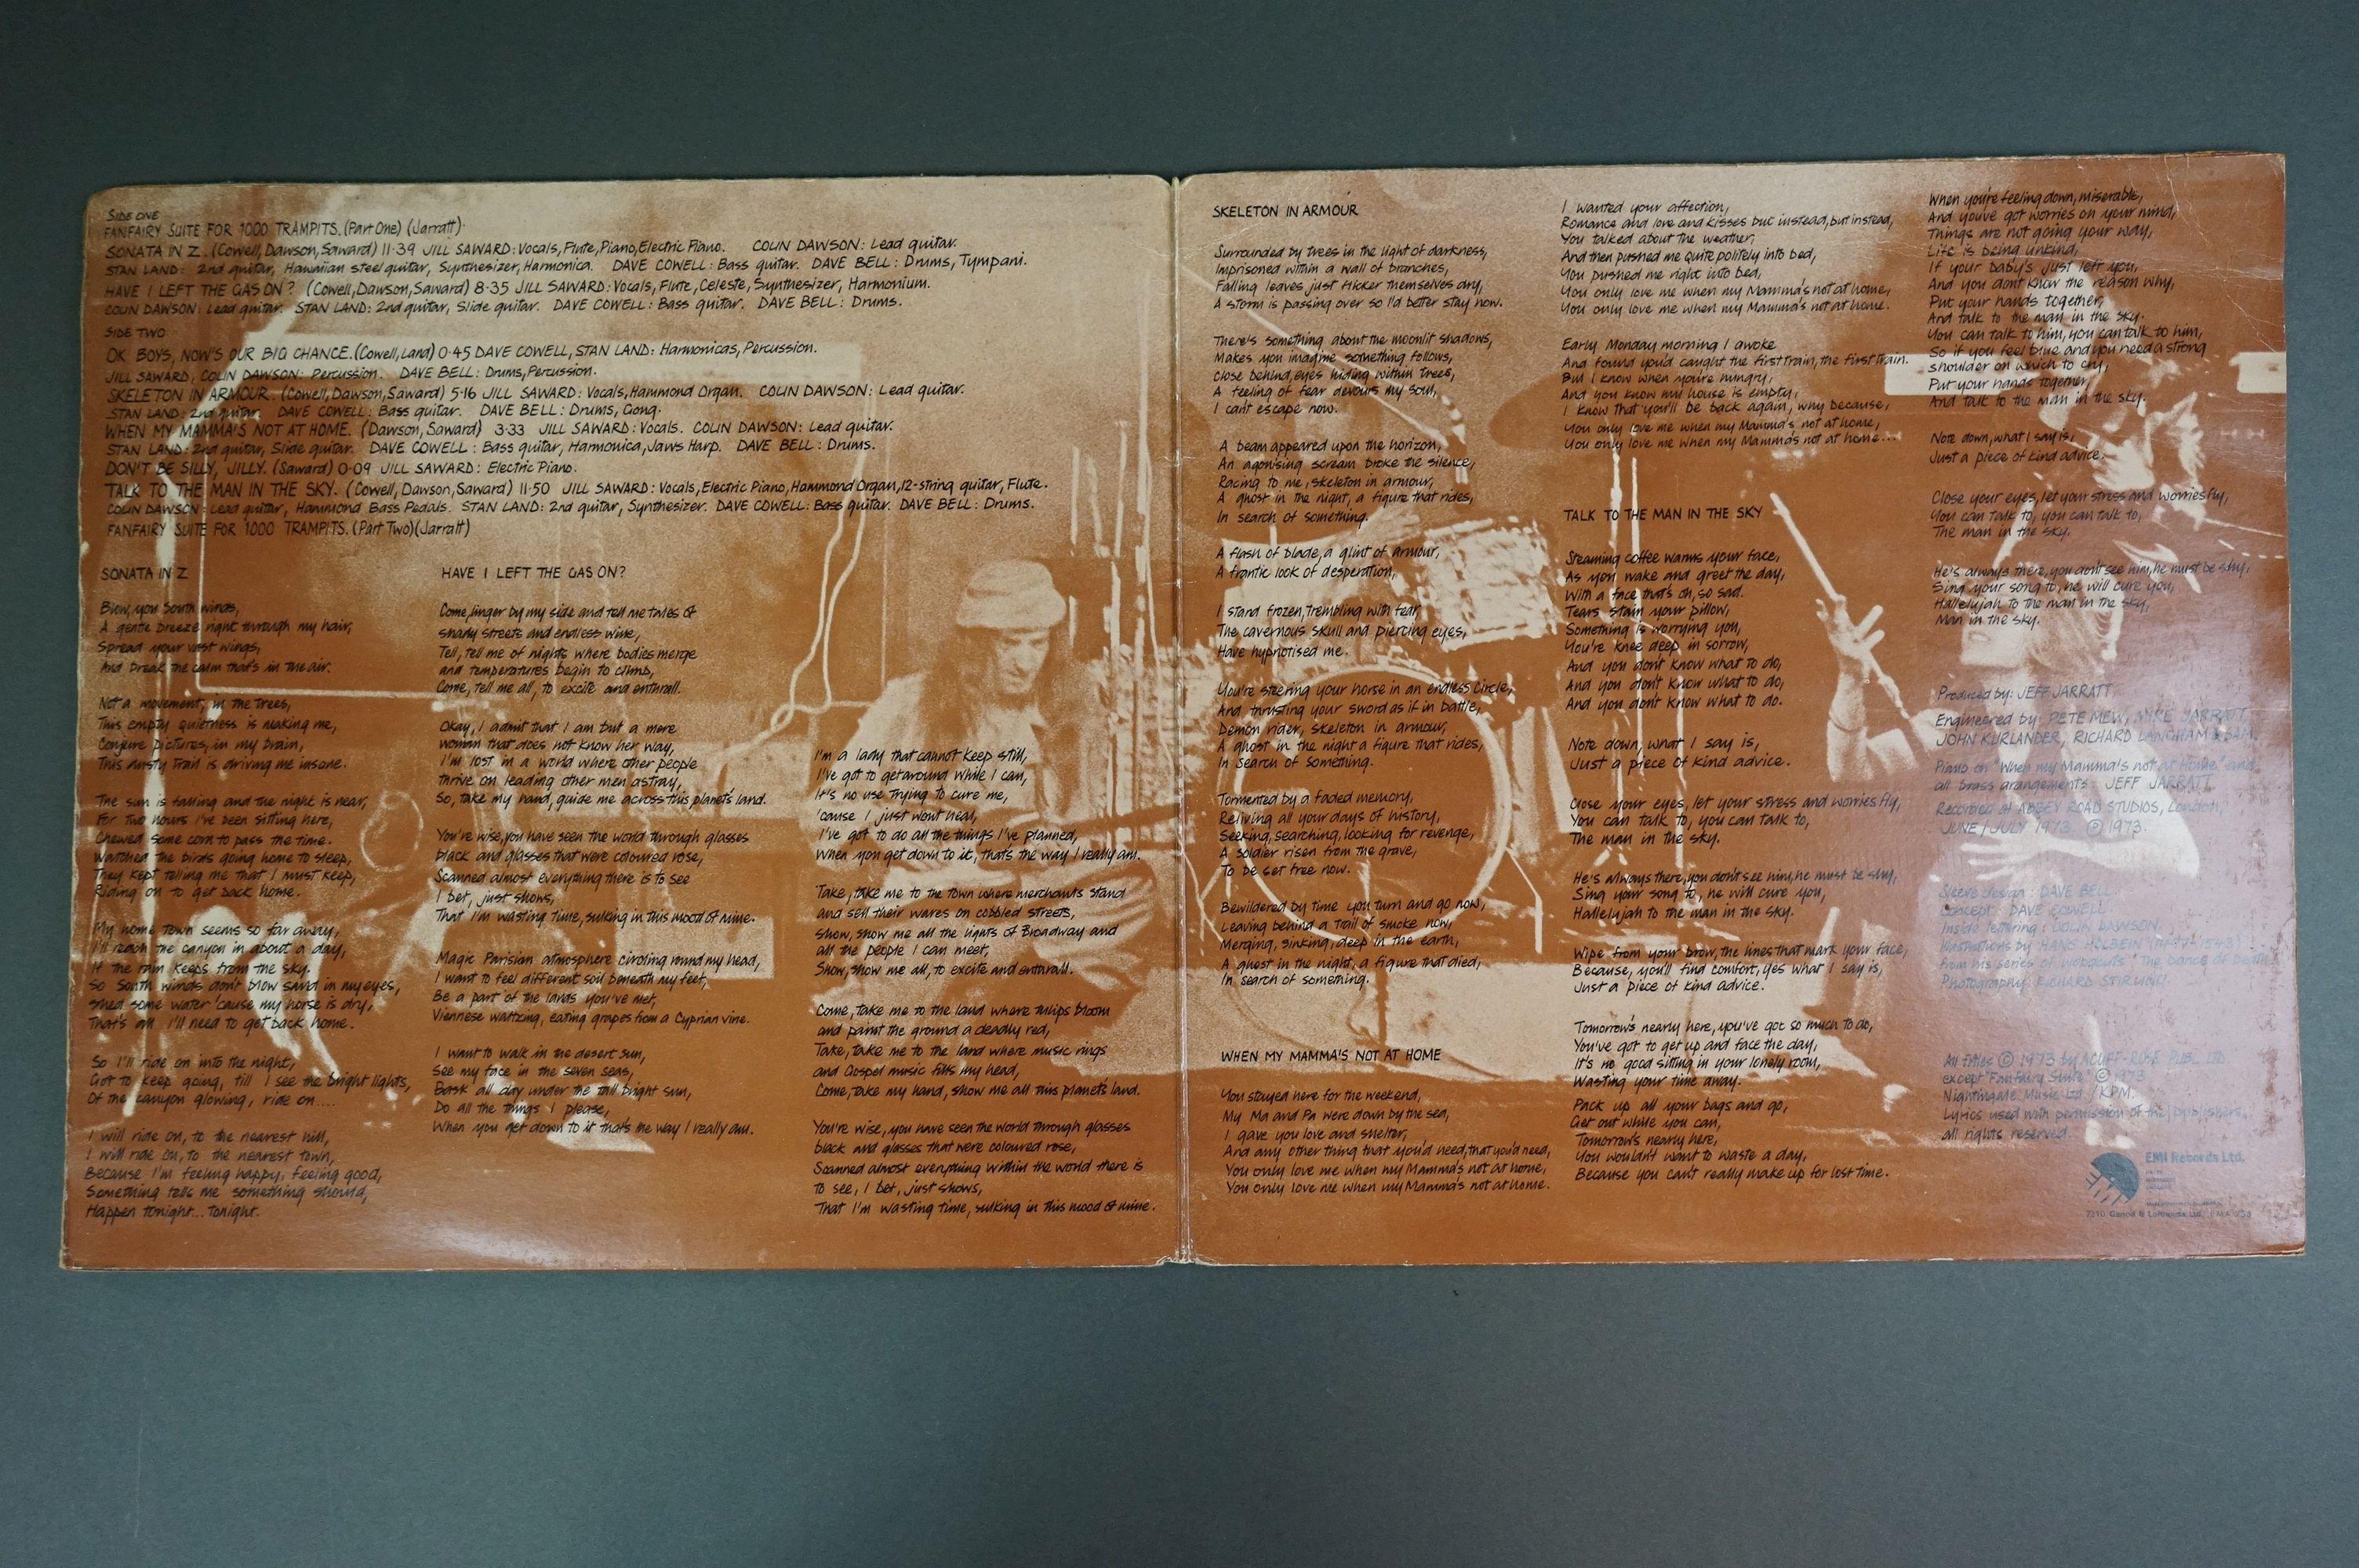 Vinyl - Fusion Orchestra Skeleton In Armour LP EMA758, sleeve vg+ with buffering to corners, - Image 2 of 6